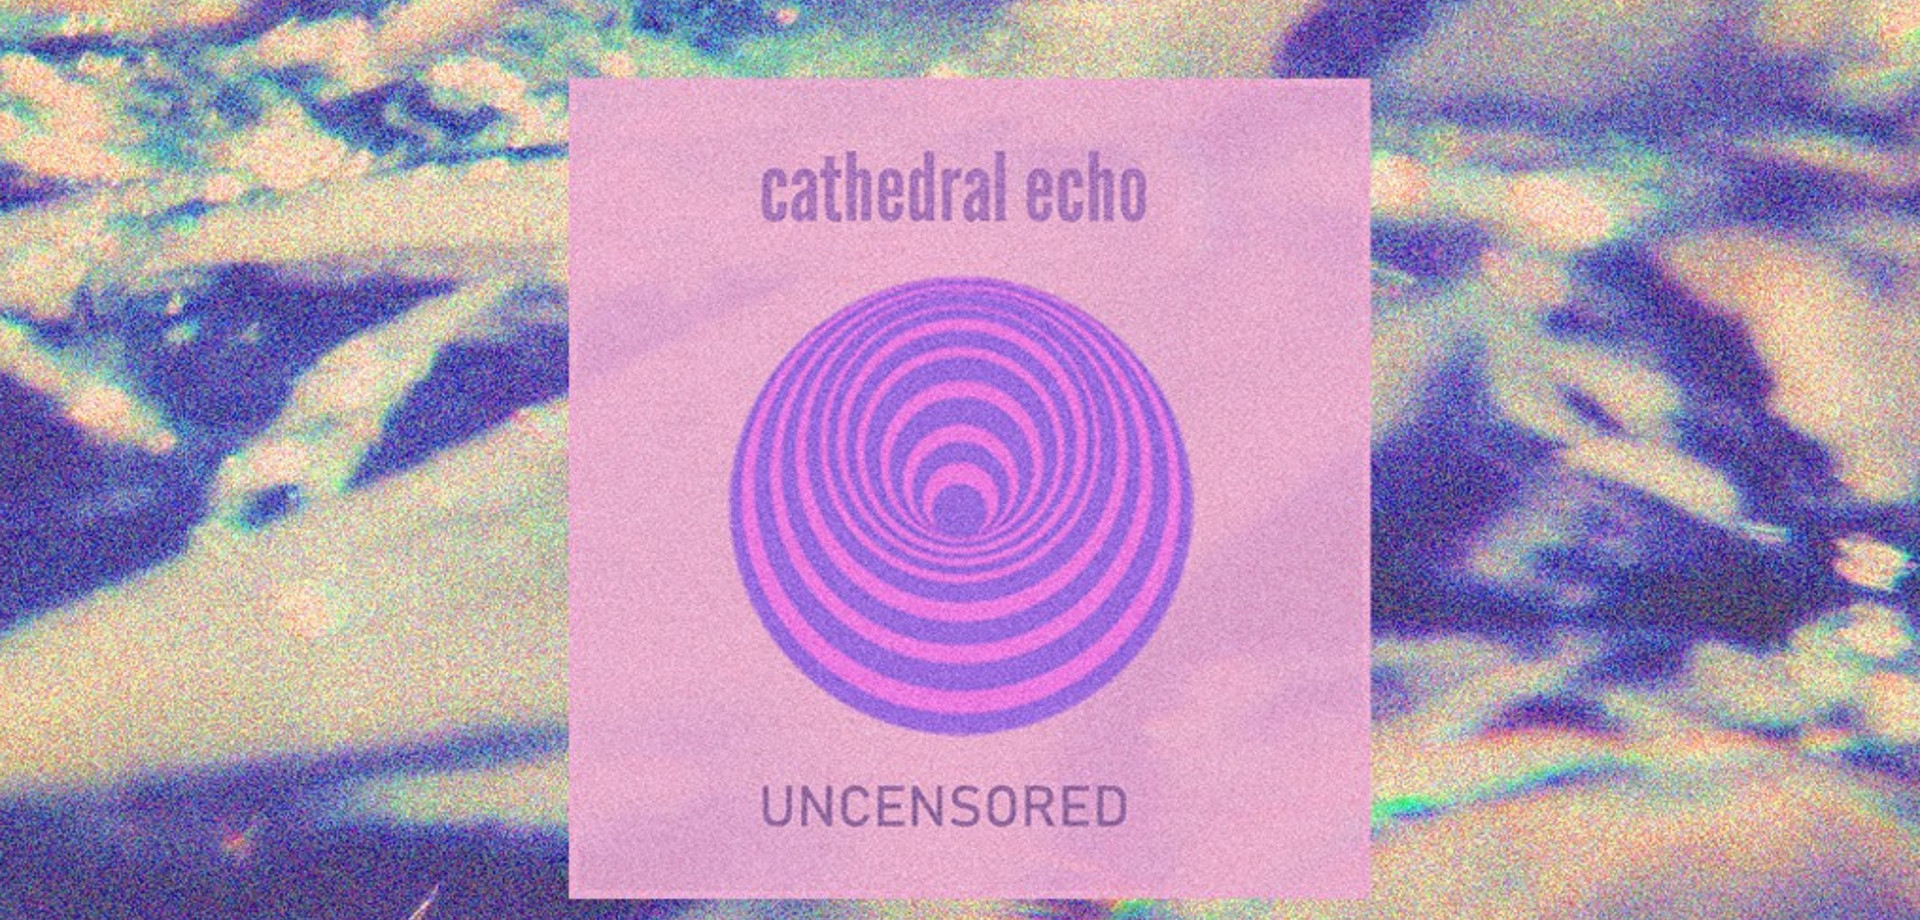 Cathedral Echo